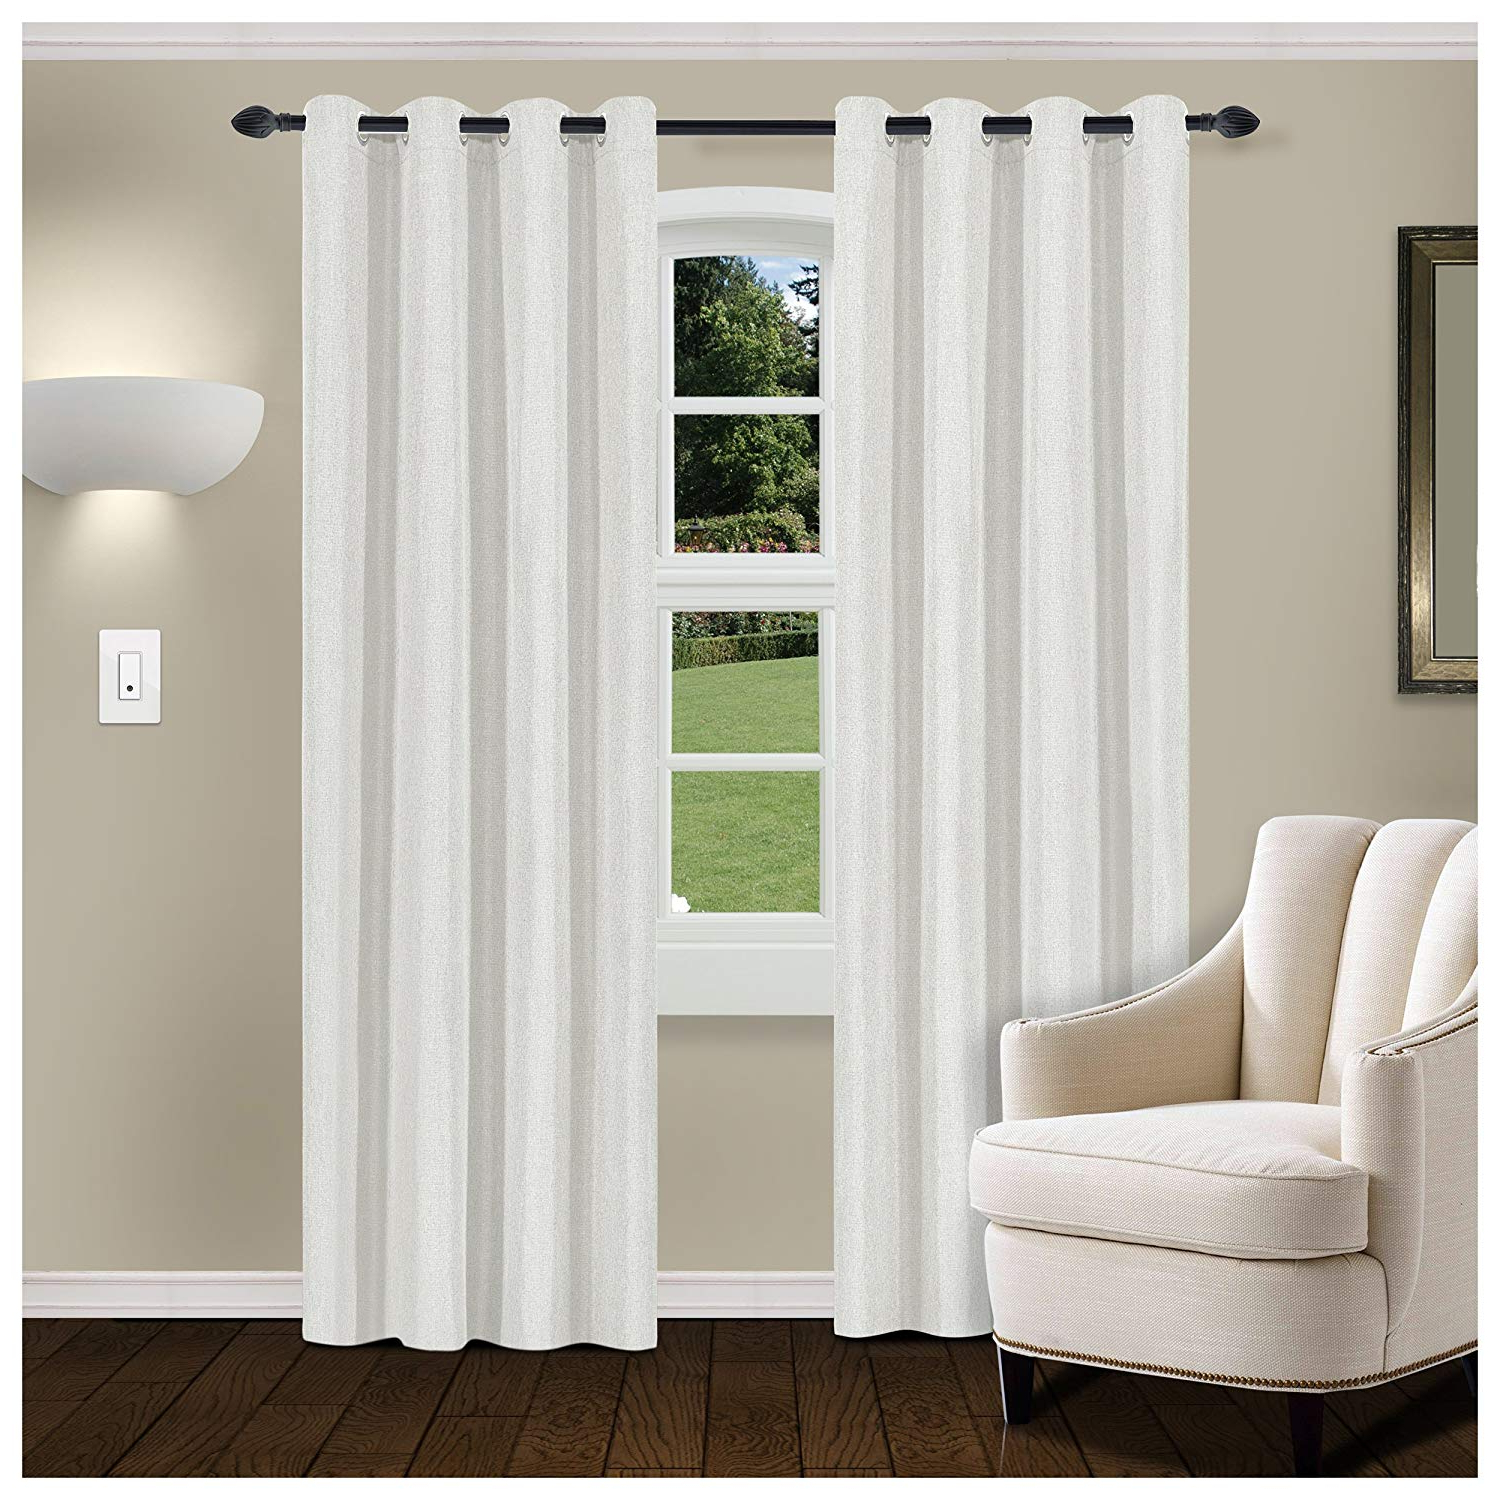 Well Known Insulated Thermal Blackout Curtain Panel Pairs With Regard To Superior Linen Textured Blackout Curtain Set Of 2, Thermal Insulated Panel Pair With Grommet Top Header, Classic Natural Look Room Darkening Drapes, (View 6 of 20)